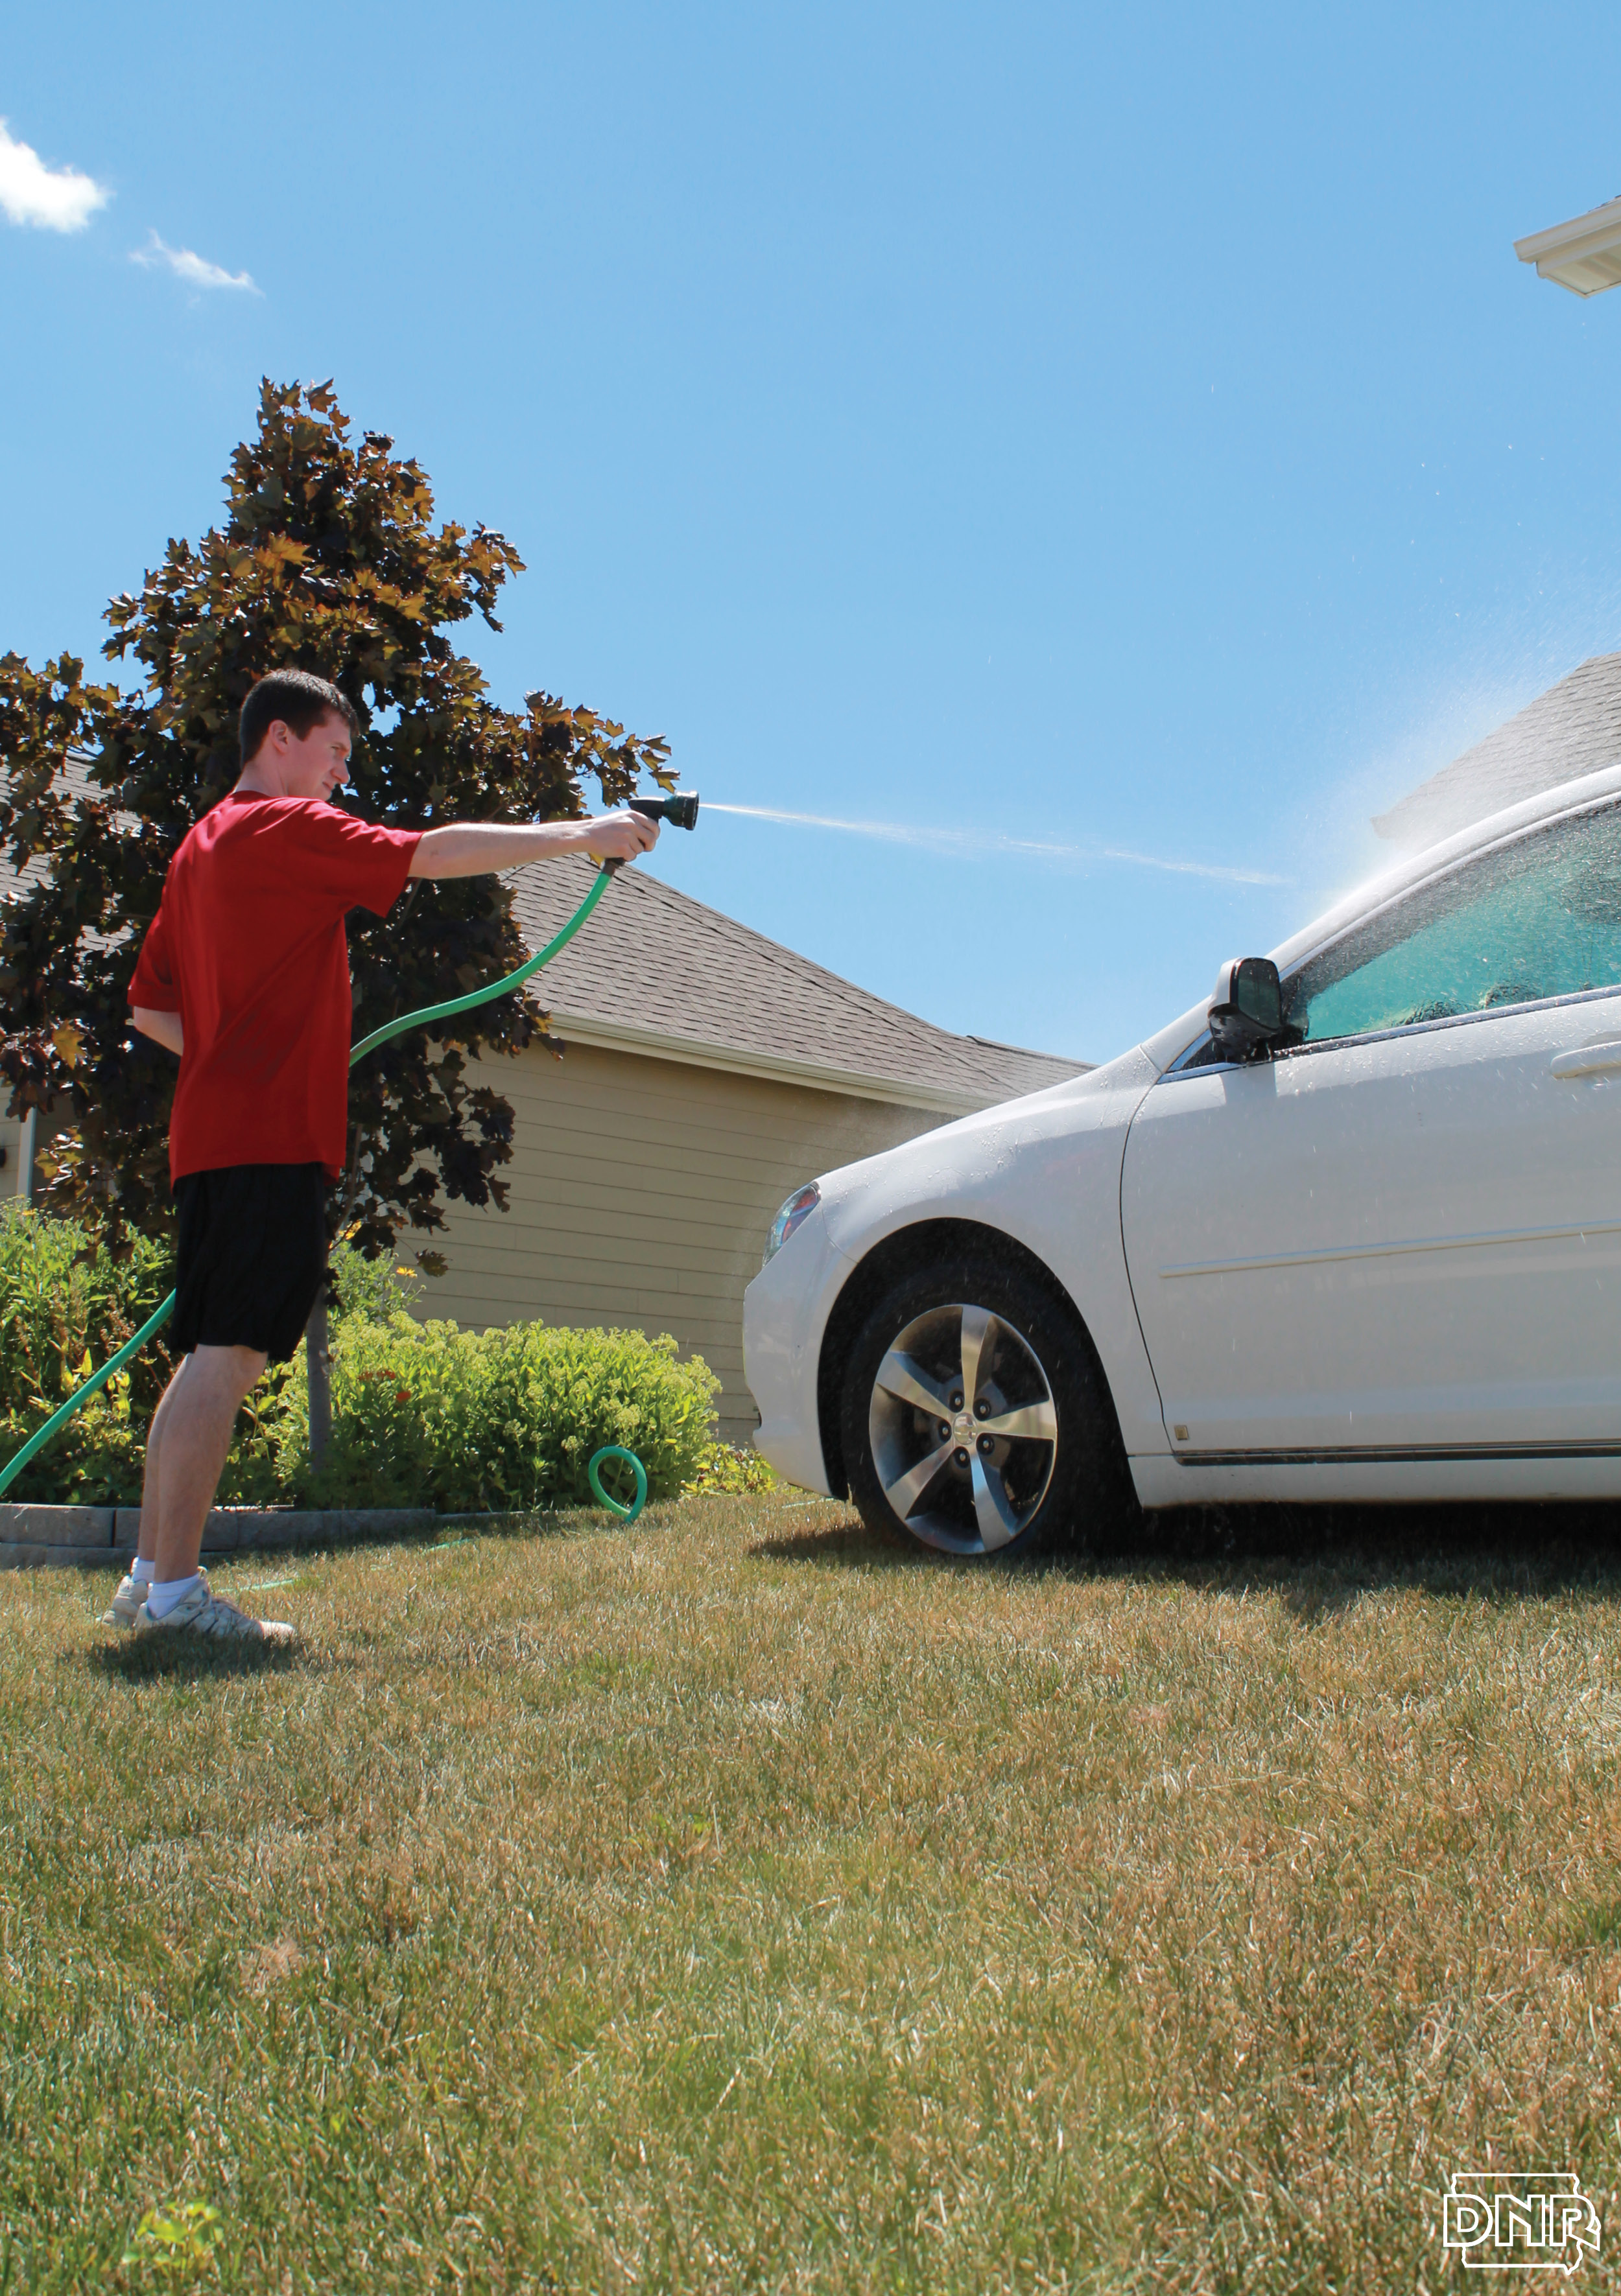 If you wash your car at home, park it on the grass to keep soaps and cleaners out of the storm sewer - more tips | Iowa DNR